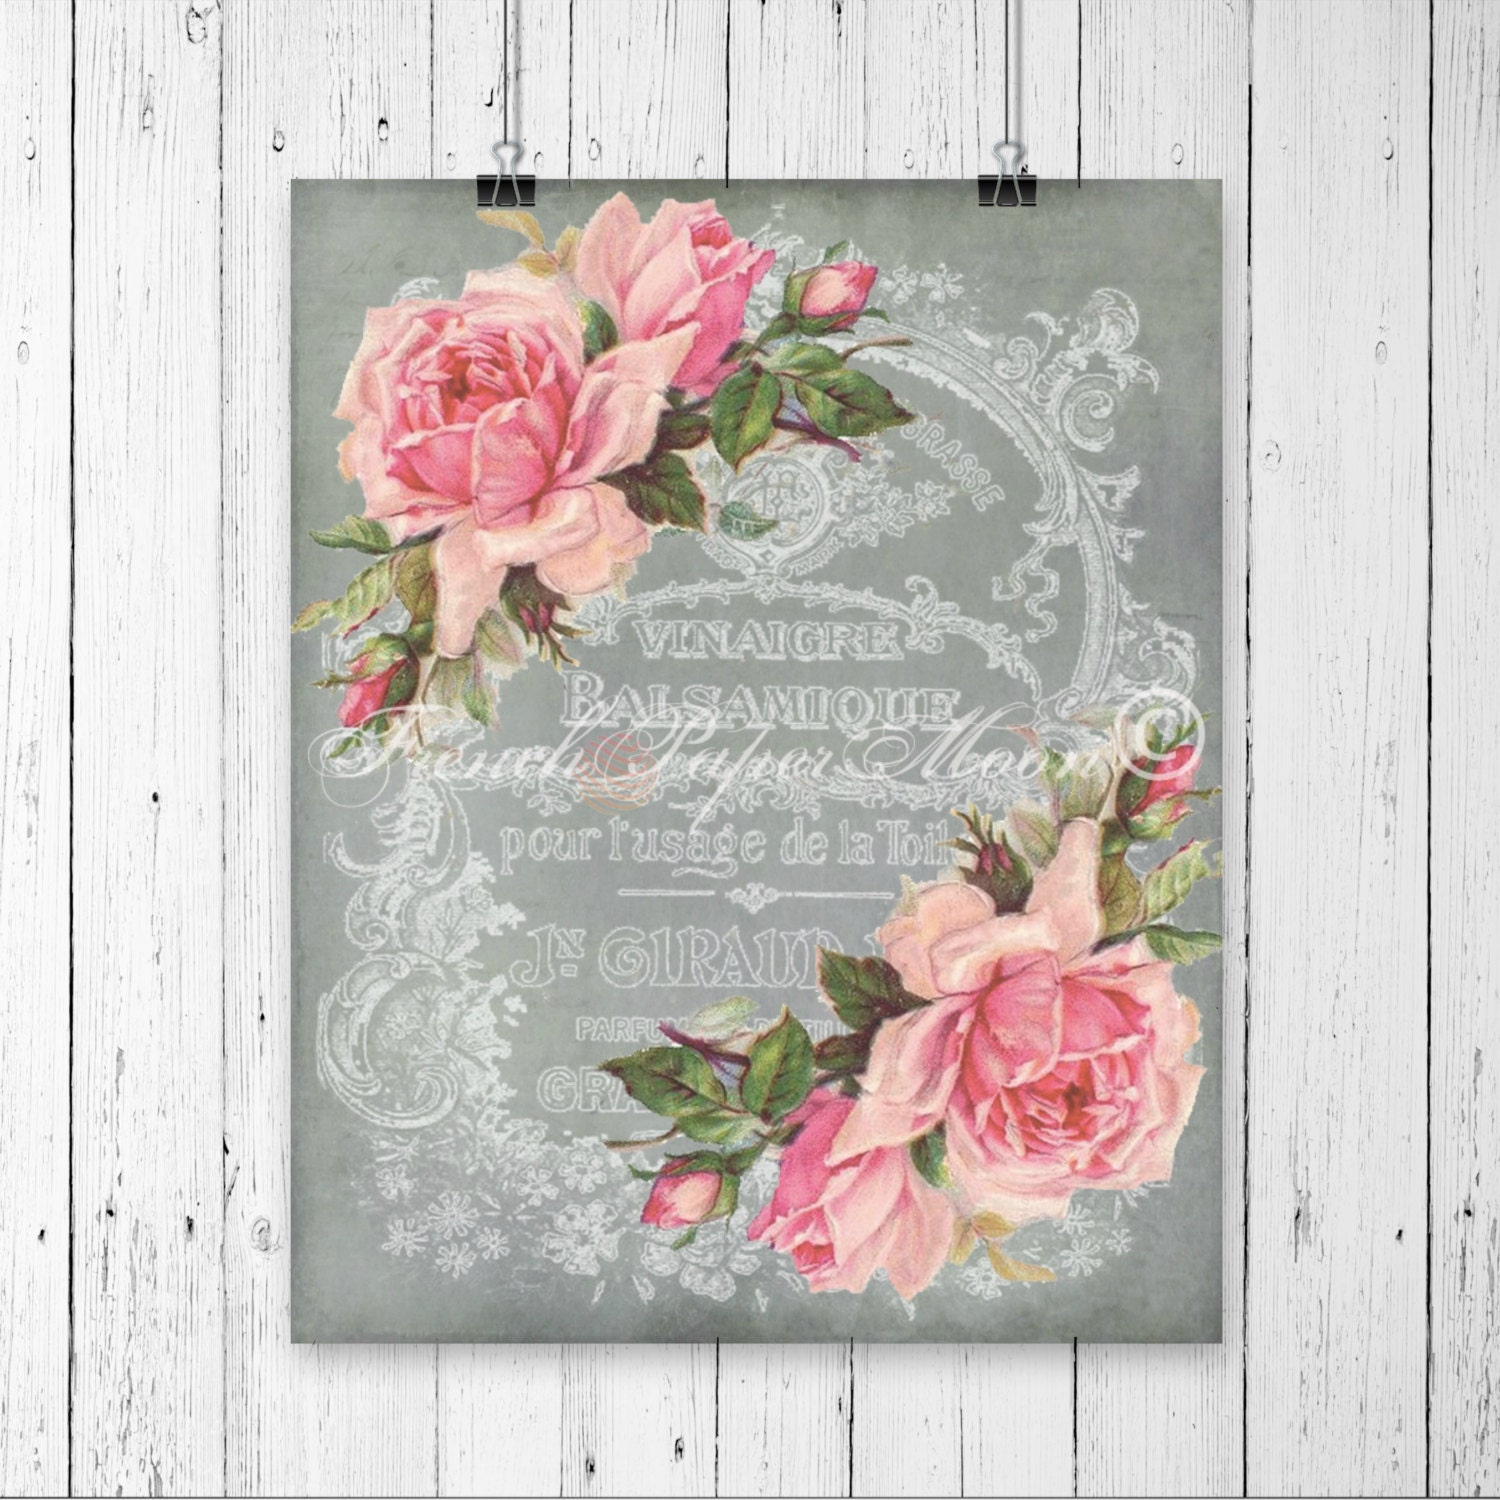 Digital Download Vintage French Graphics Shabby Pink Roses Ephemera Collage Pillow Image